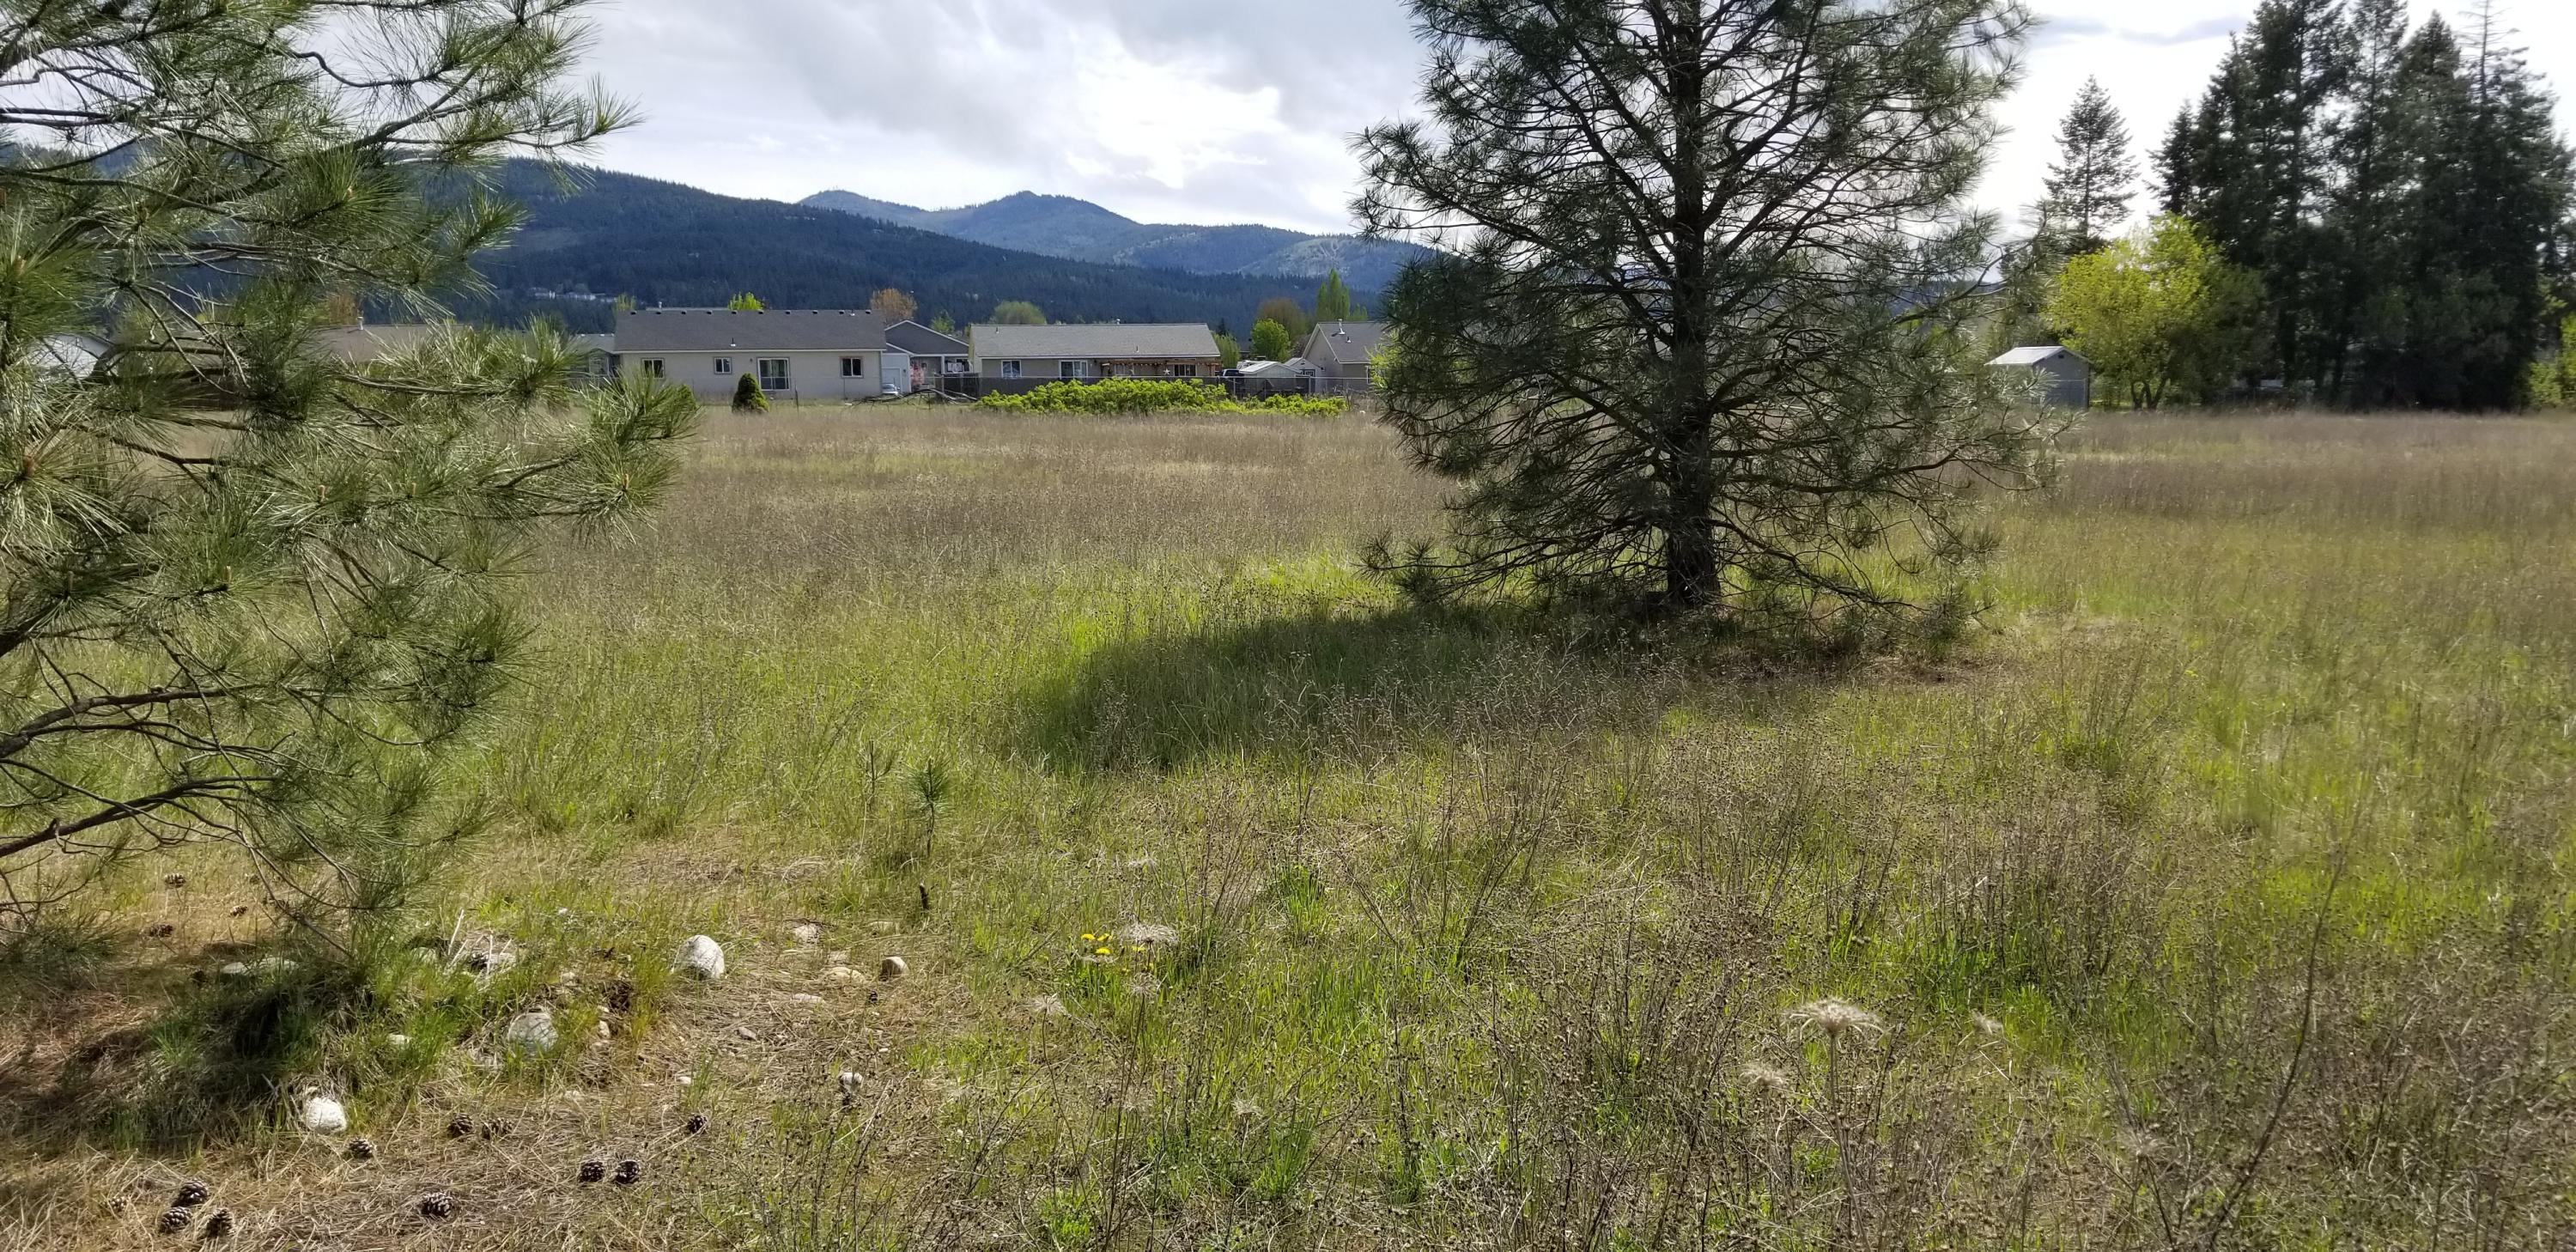 photo of W Seltice Way Lot 4 Post Falls Idaho 83854